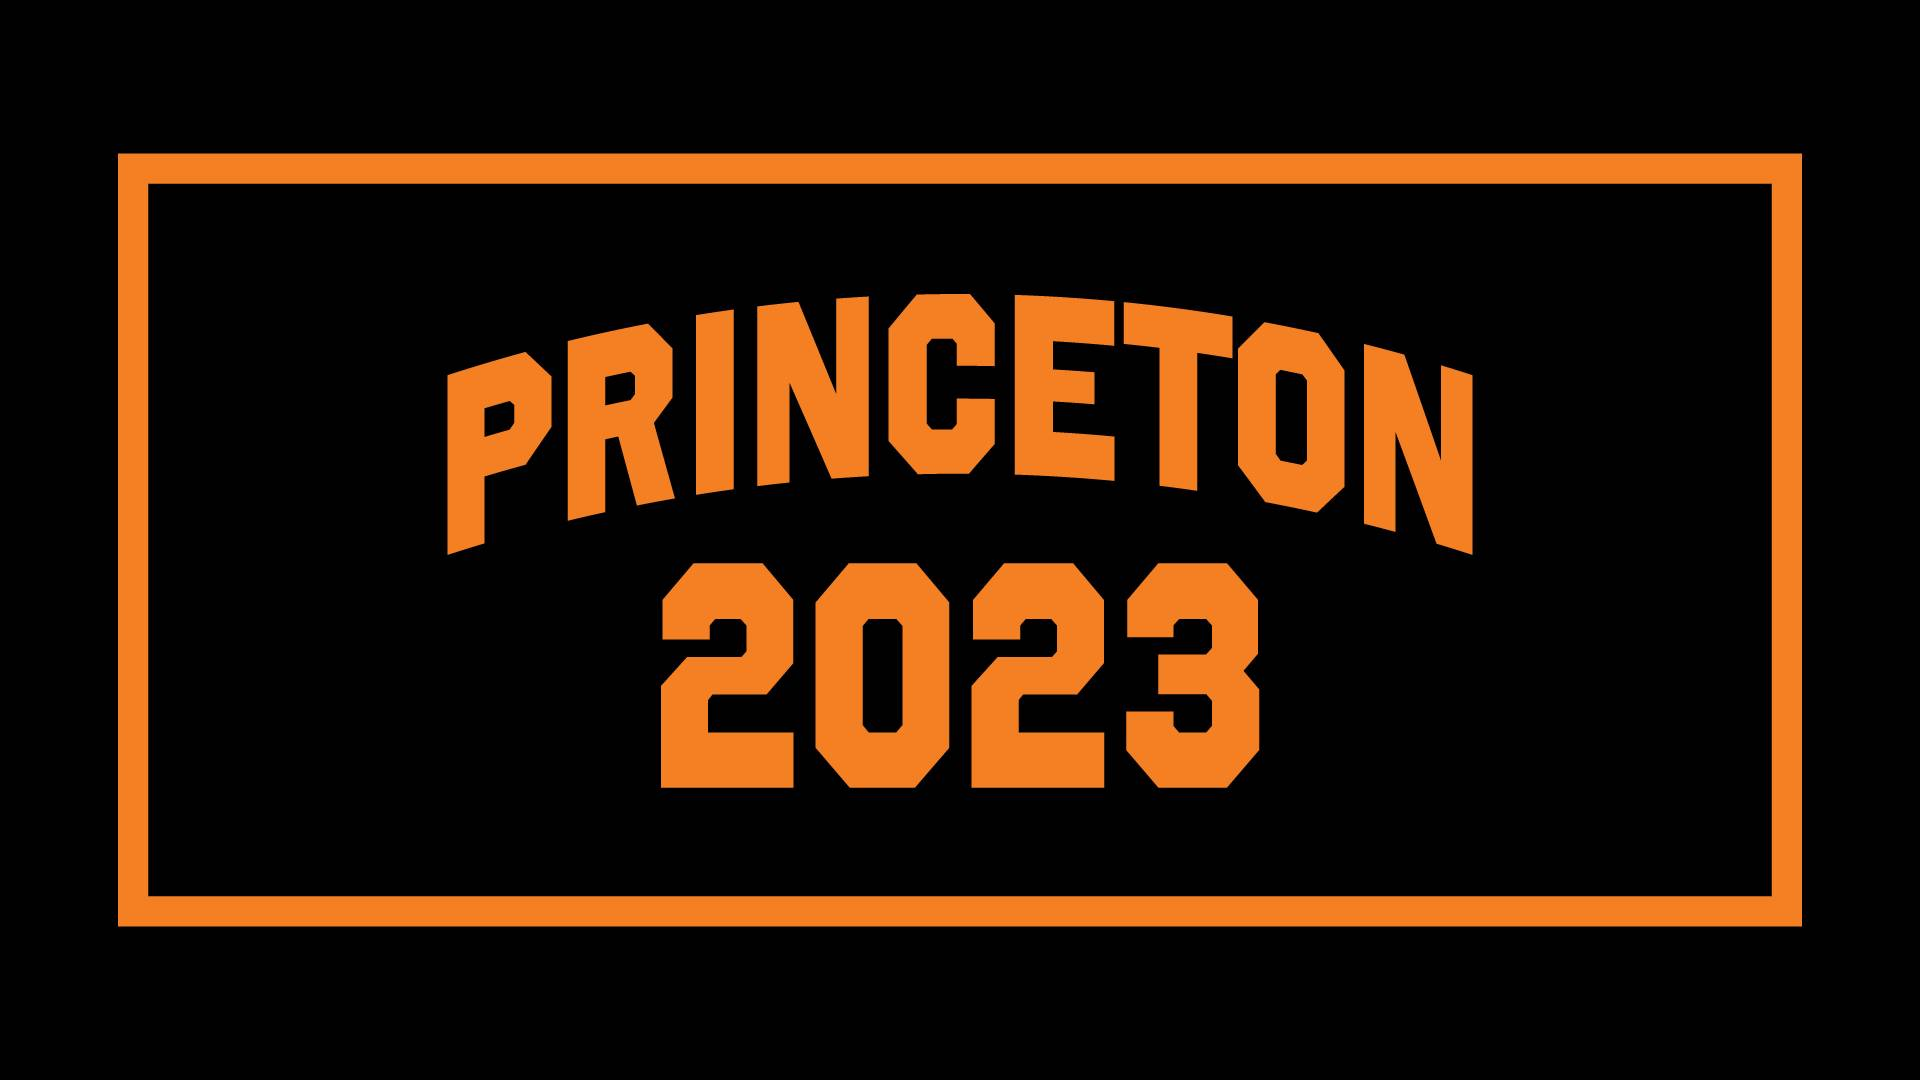 Princeton offers early action admission to 743 students for Class of 2023